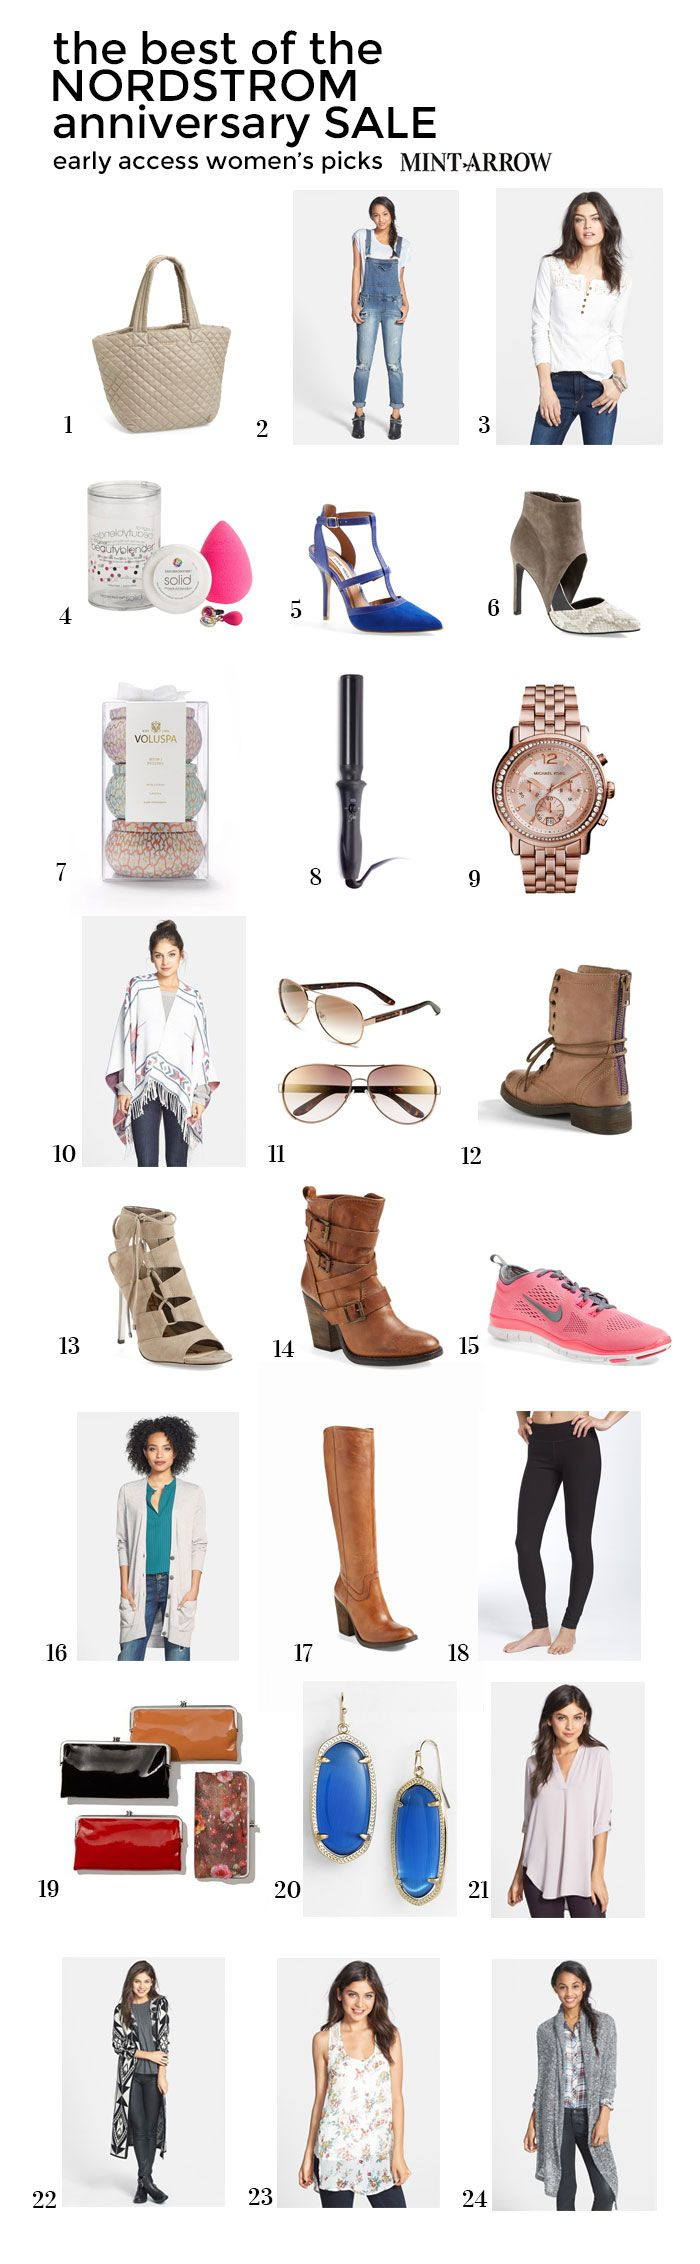 the BEST of the nordstrom anniversary sale: early access picks - WOMEN'S